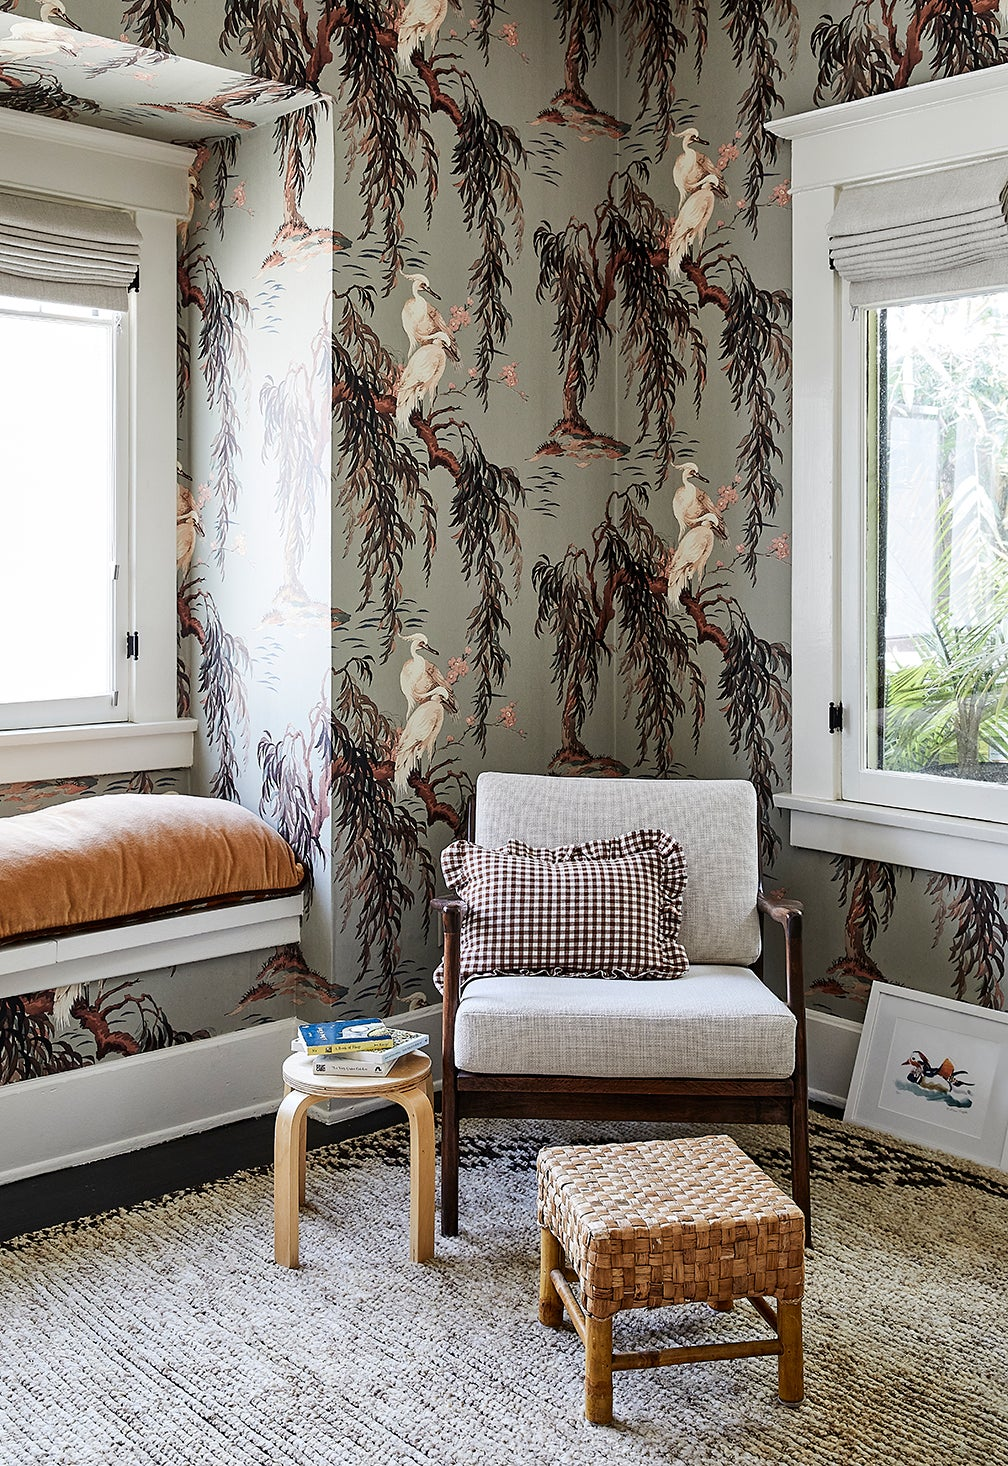 dreamy cane wallpaper in playroom